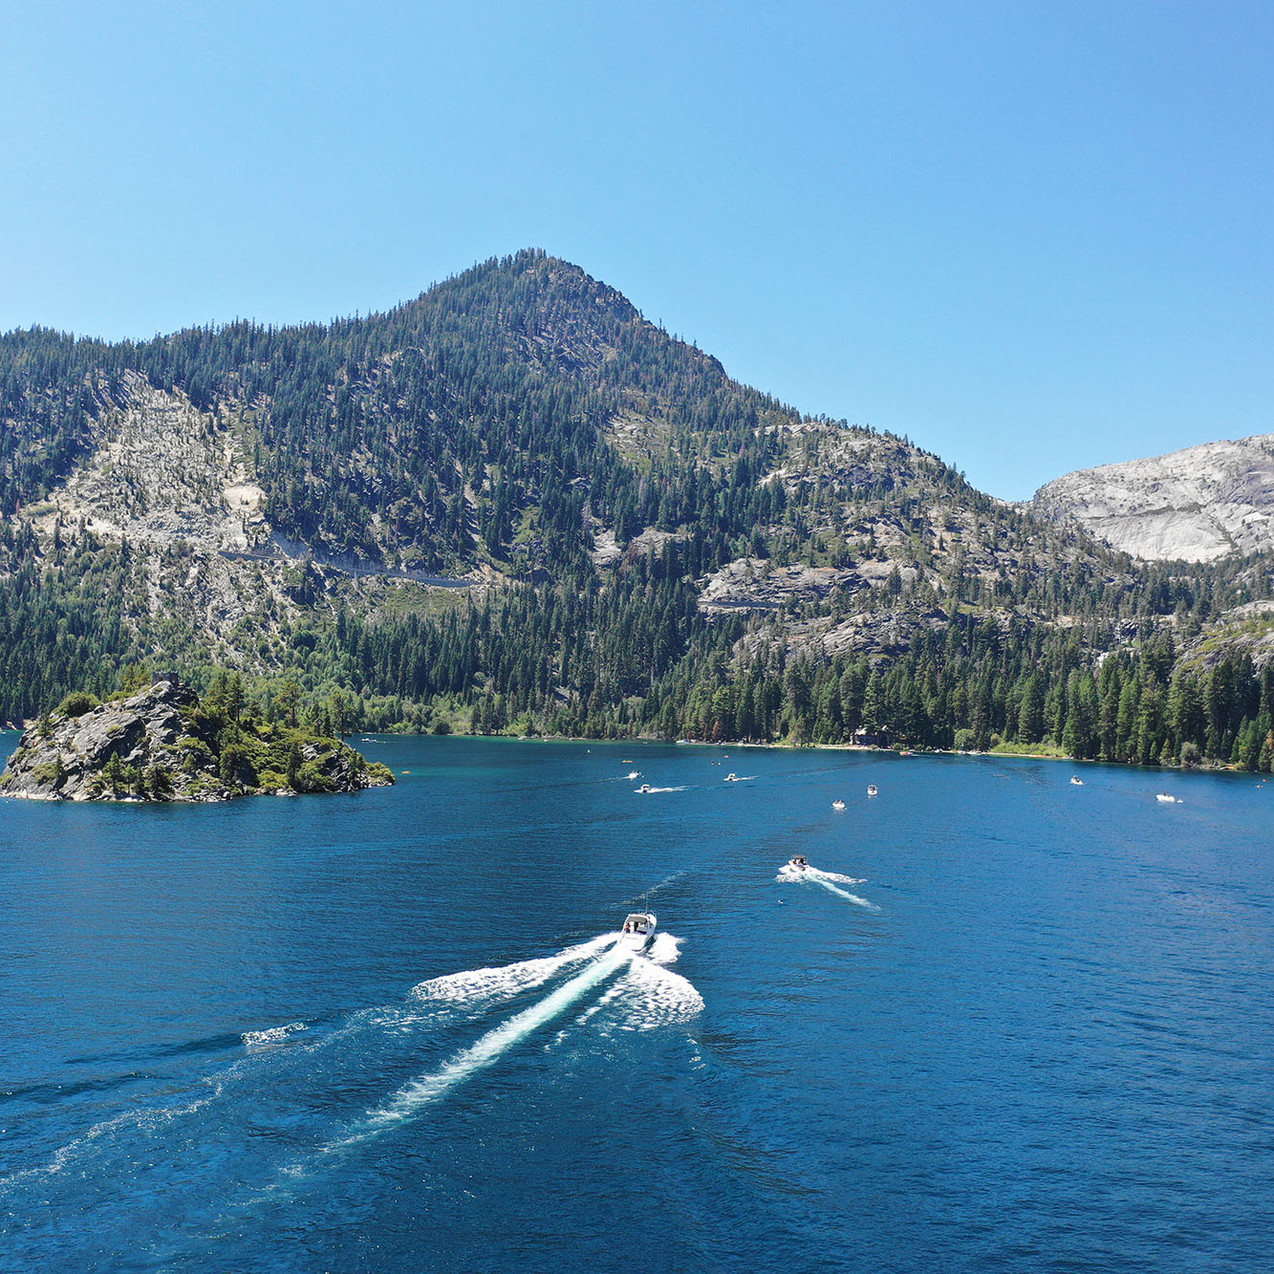 Enjoying the historical stories and views of Emerald Bay.